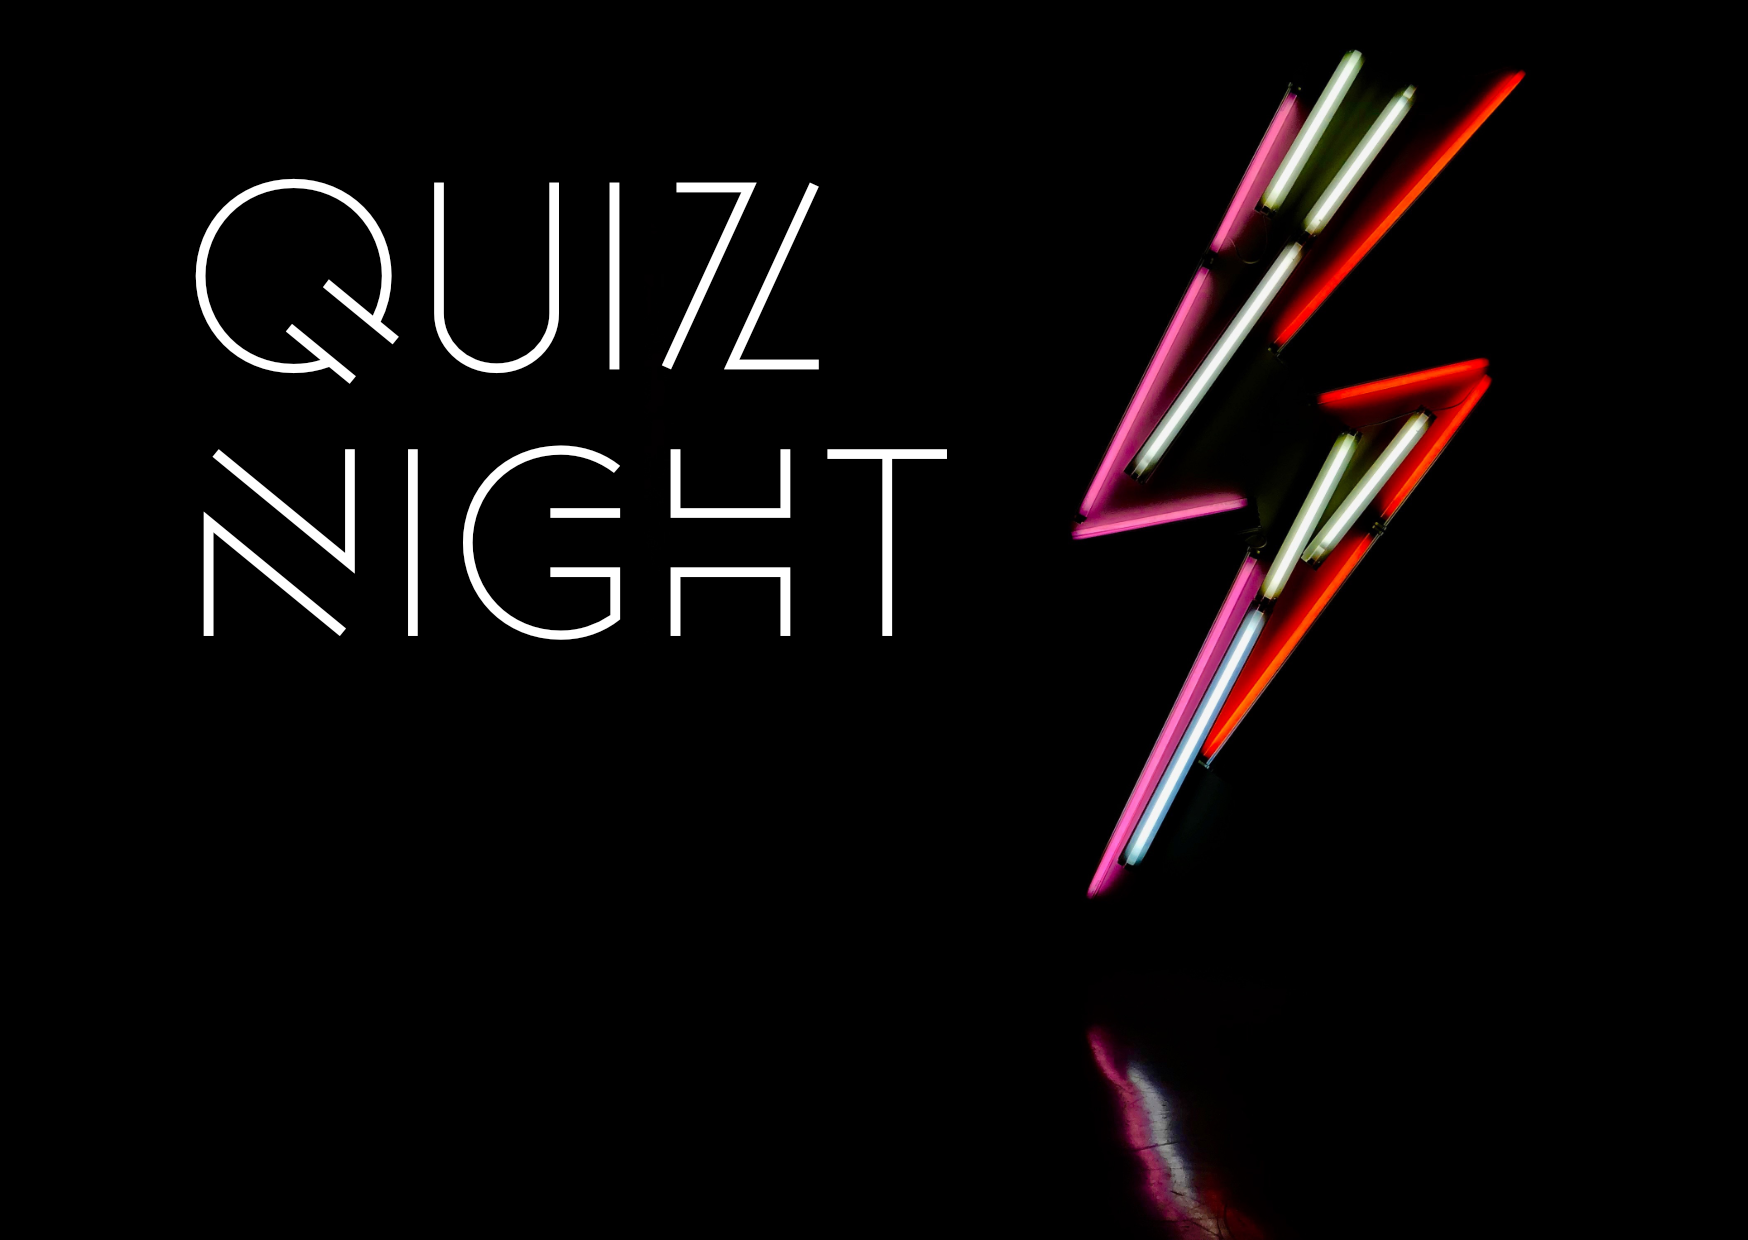 Quiz Night Graphic 2.png